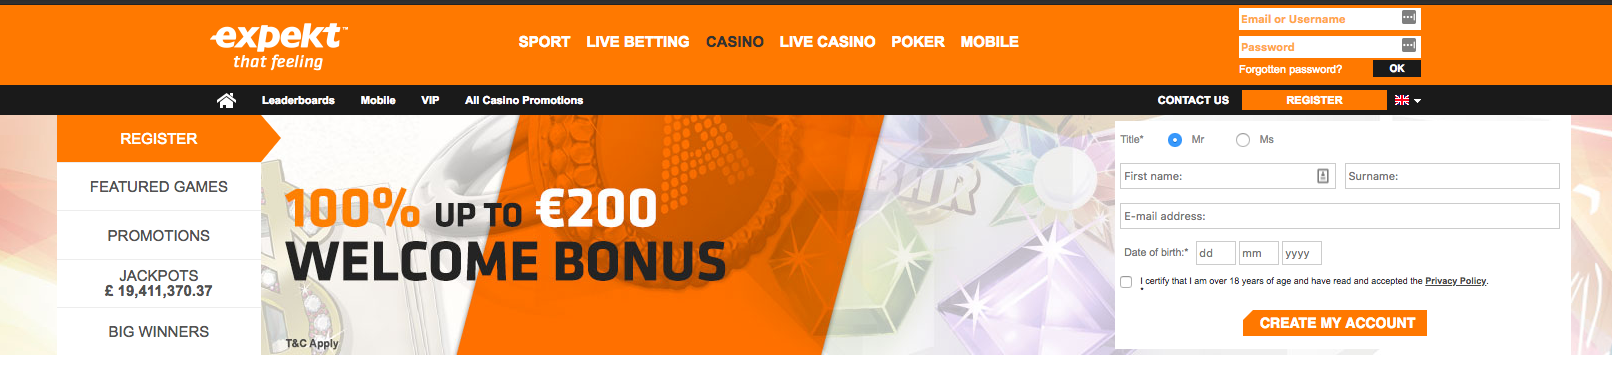 Expekt Casino Welcome Bonuses and Promotions